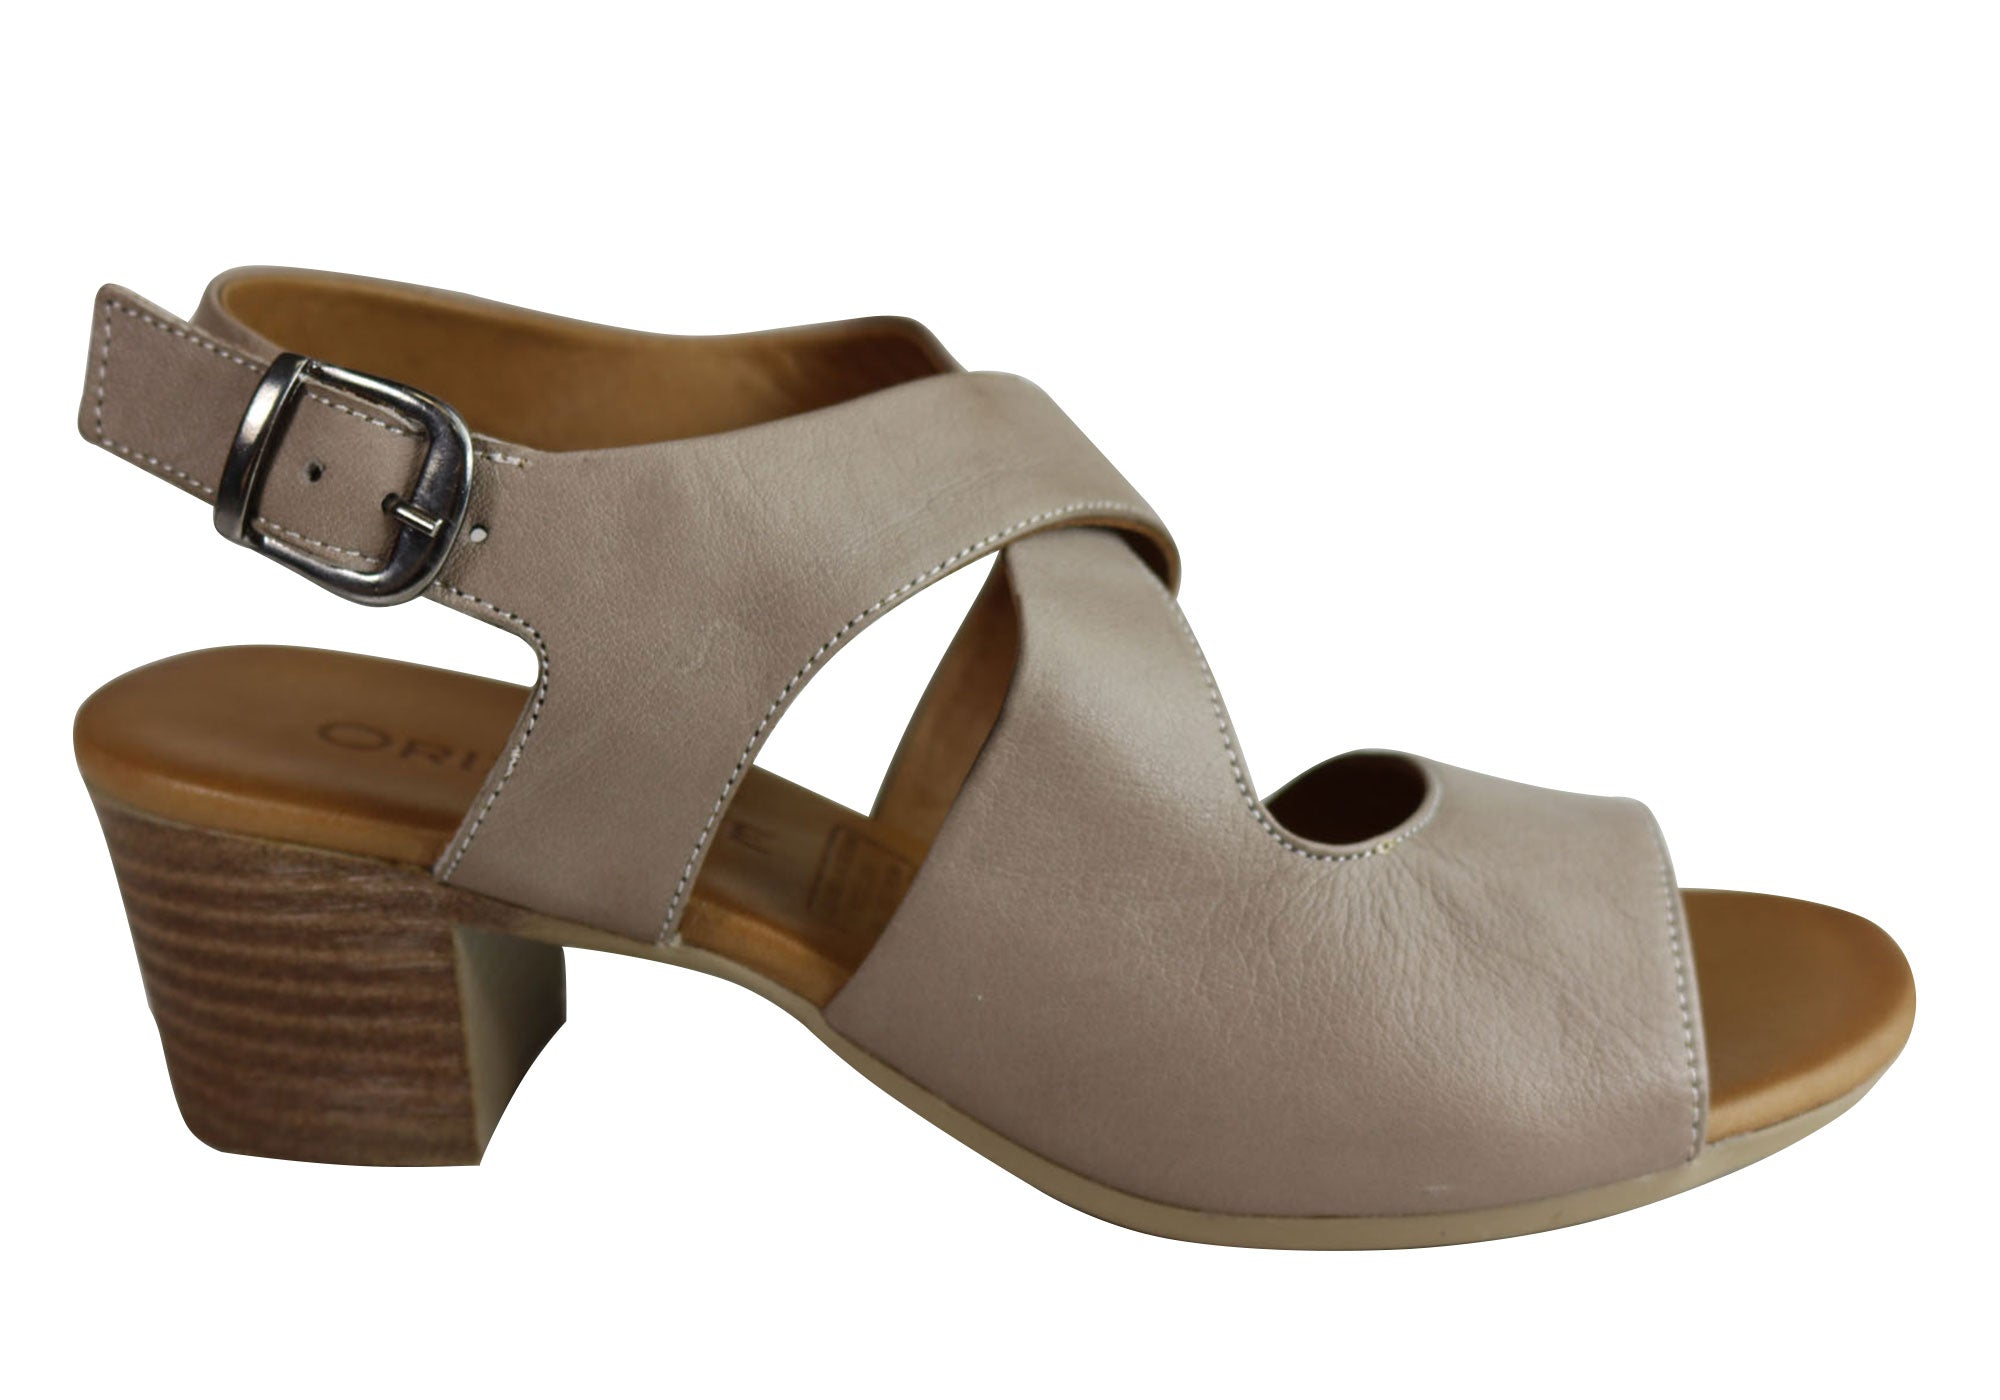 a203ffa49a7b NEW ORIZONTE KIRSTY WOMENS EUROPEAN COMFORTABLE LEATHER MID HEEL SANDALS